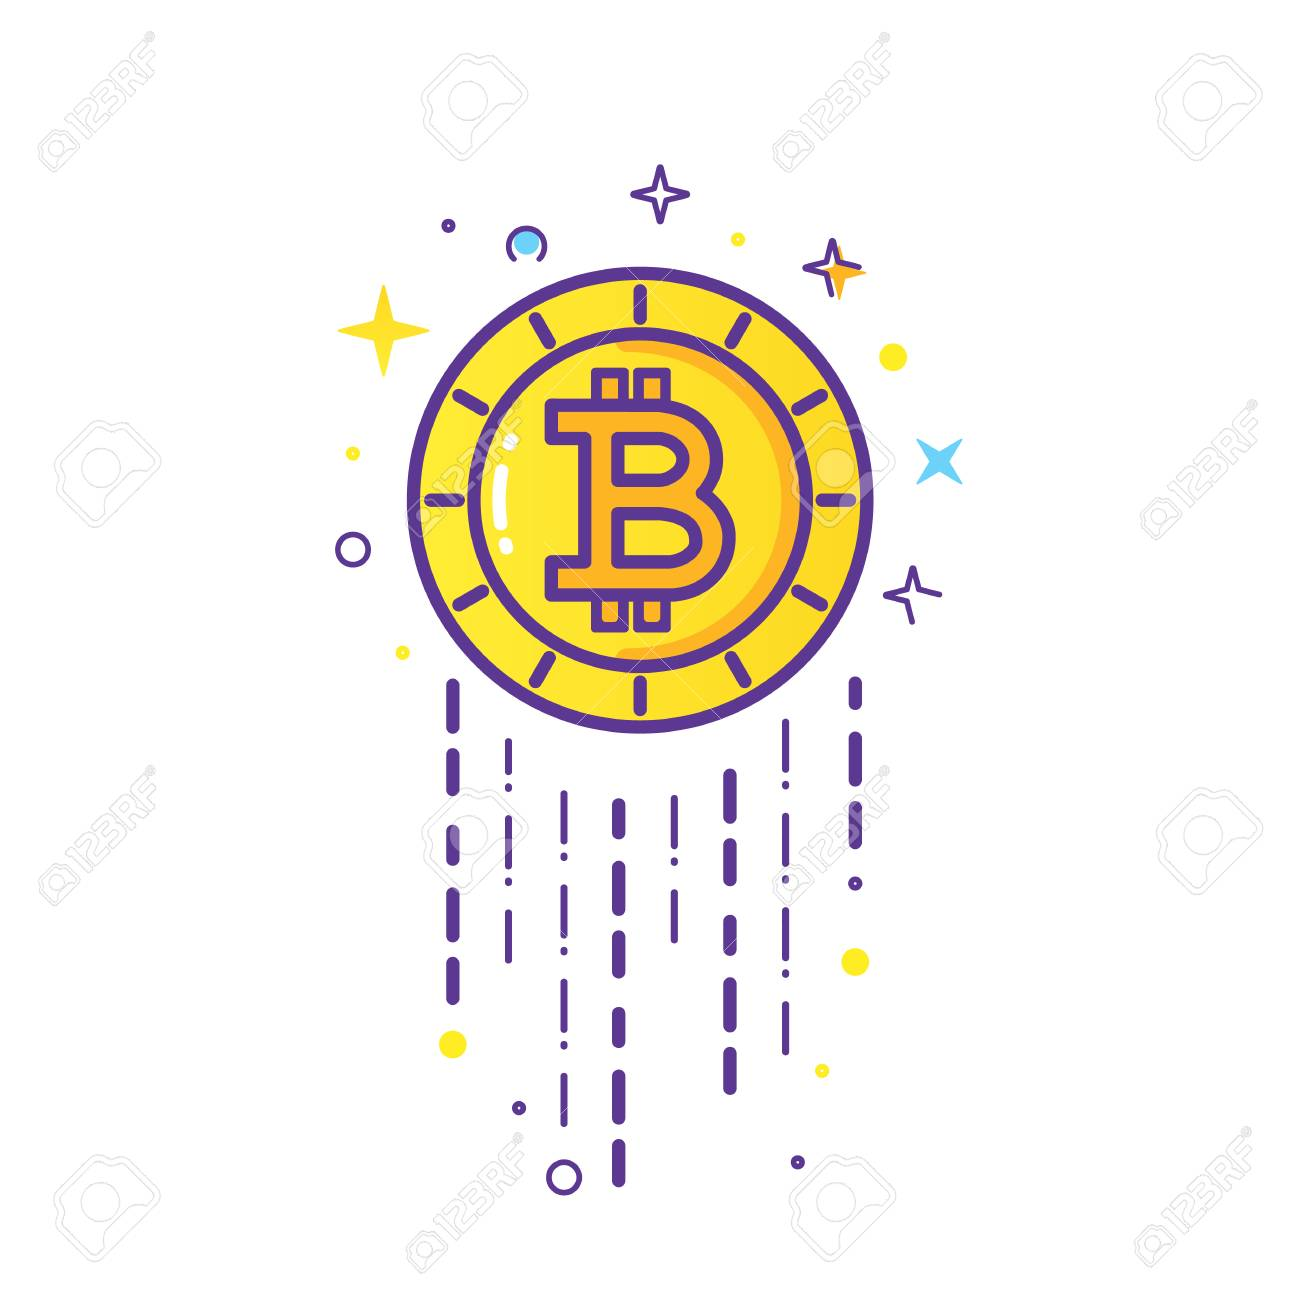 Bitcoin Logo Vector Royalty Free Cliparts Vectors And Stock Illustration Image 93680903